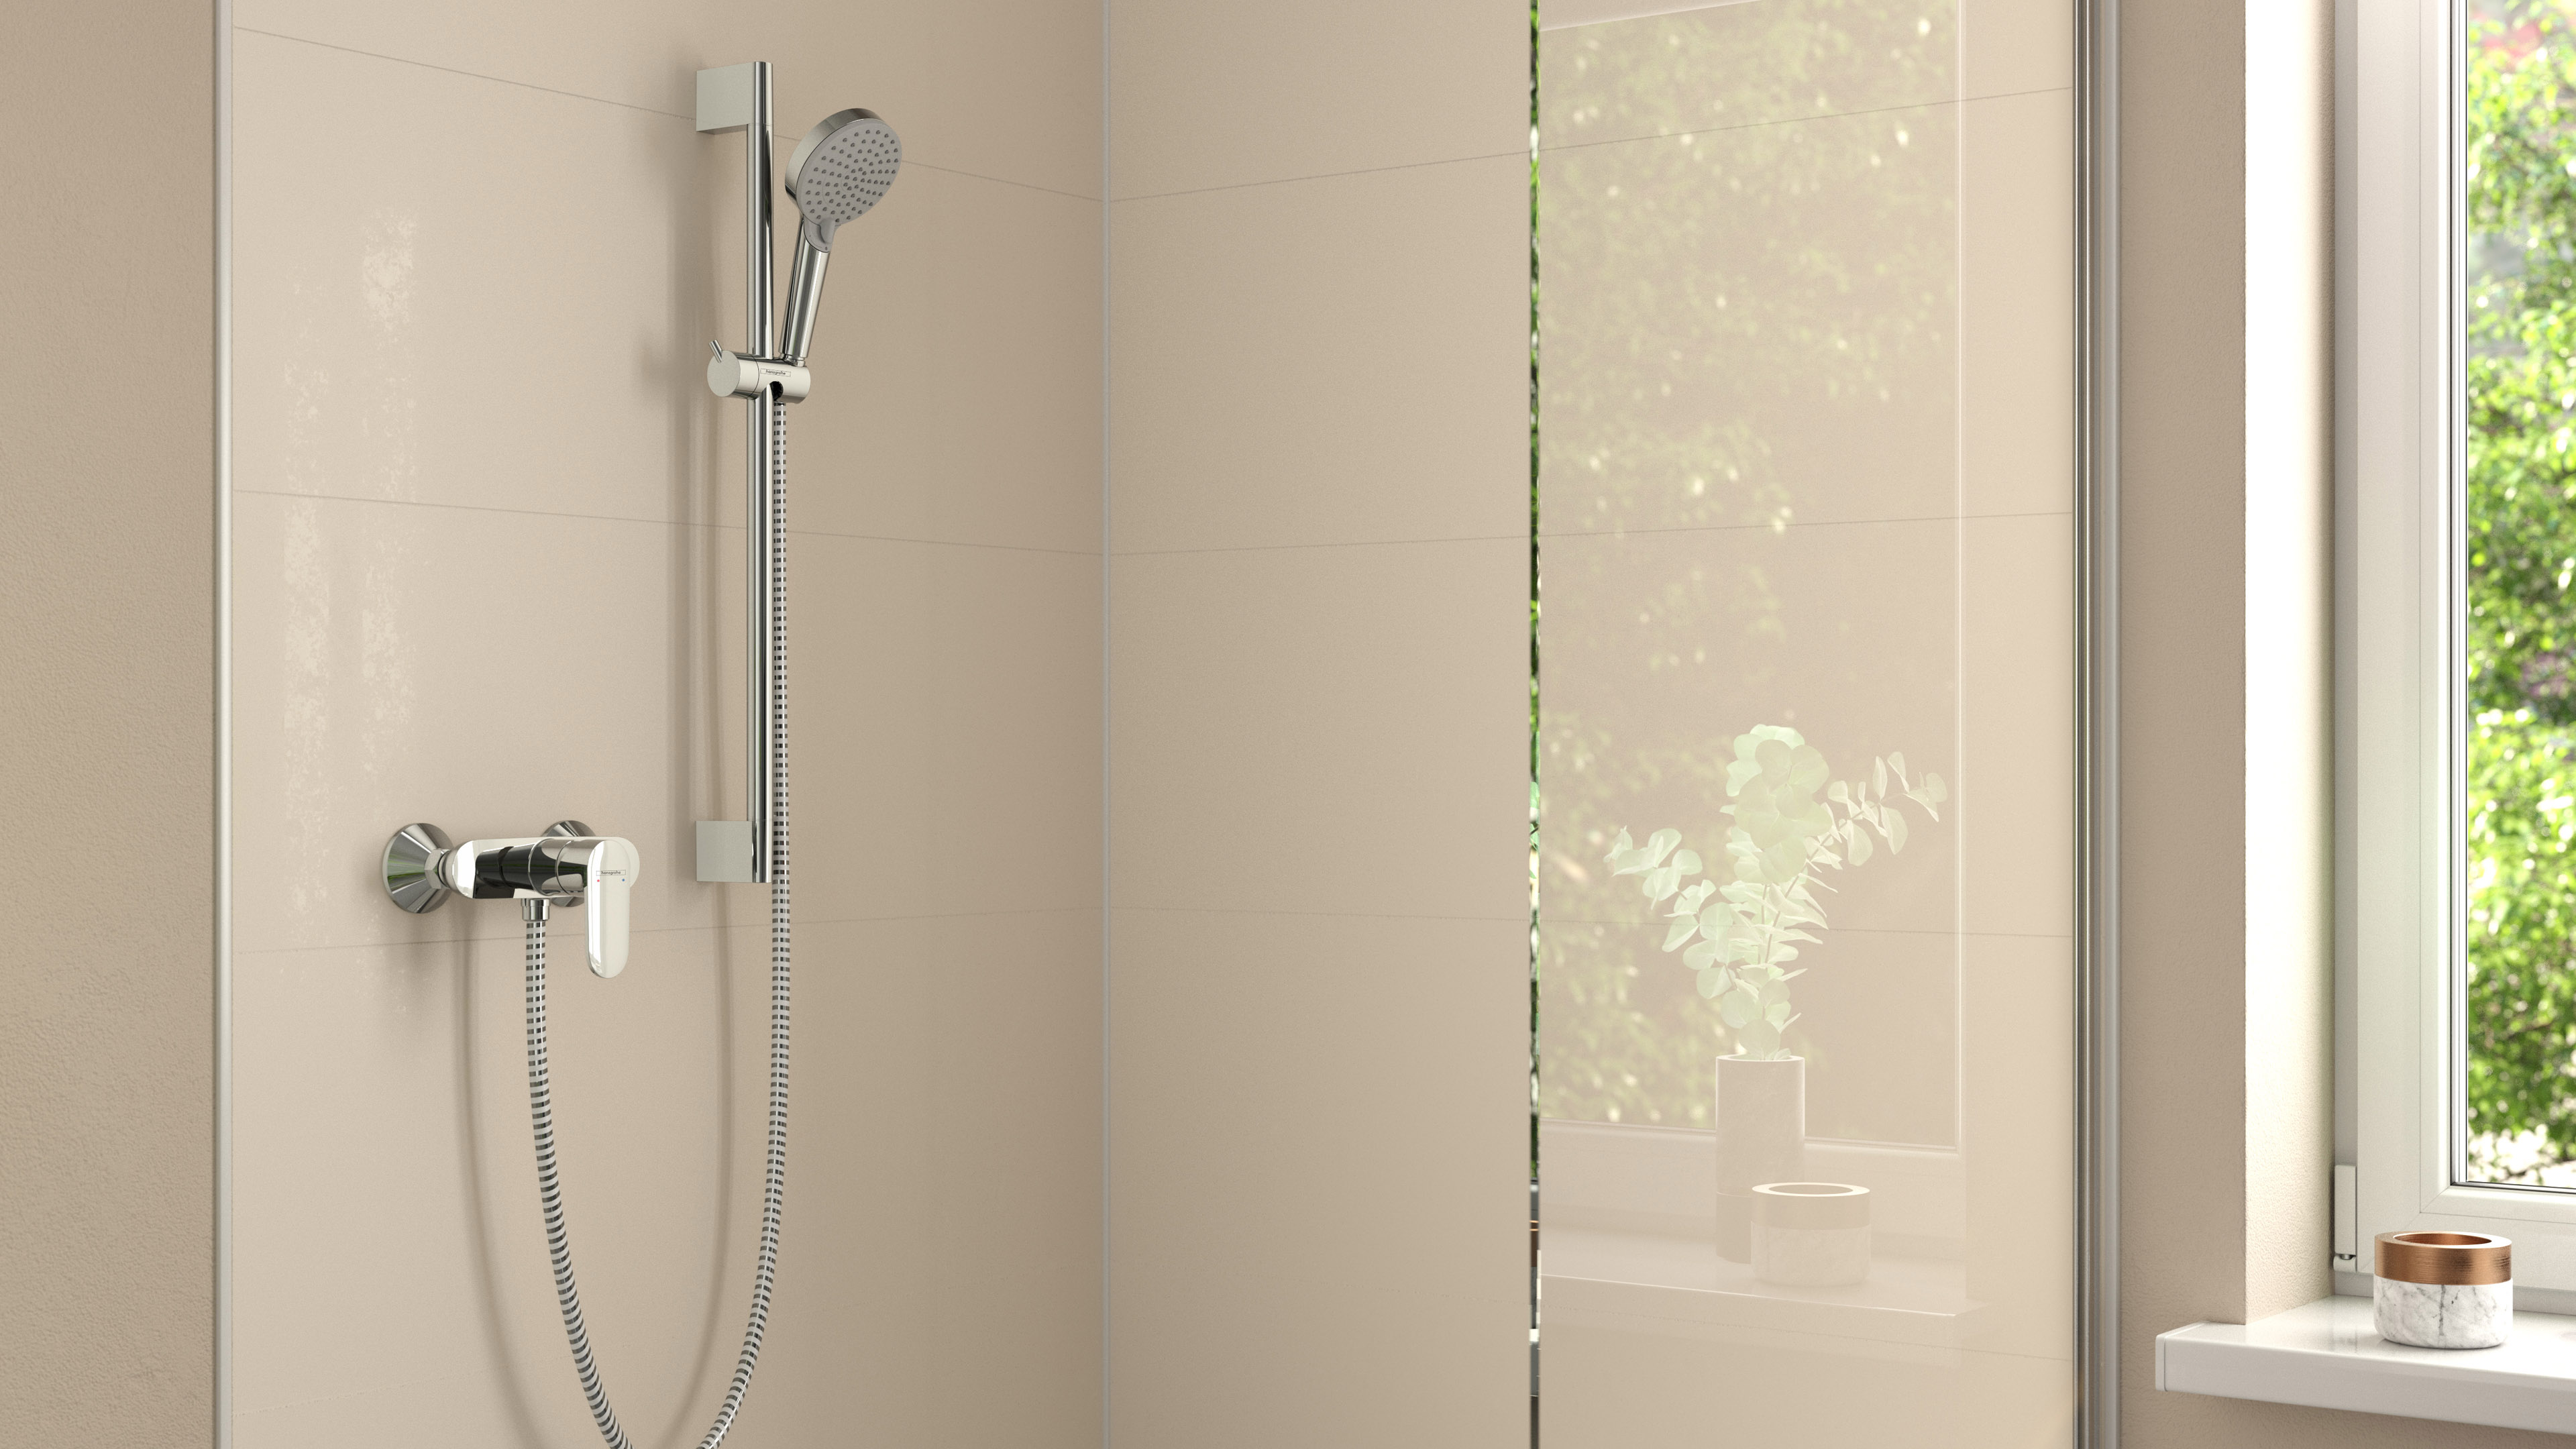 https pro hansgrohe com hansgrohe new products vernis